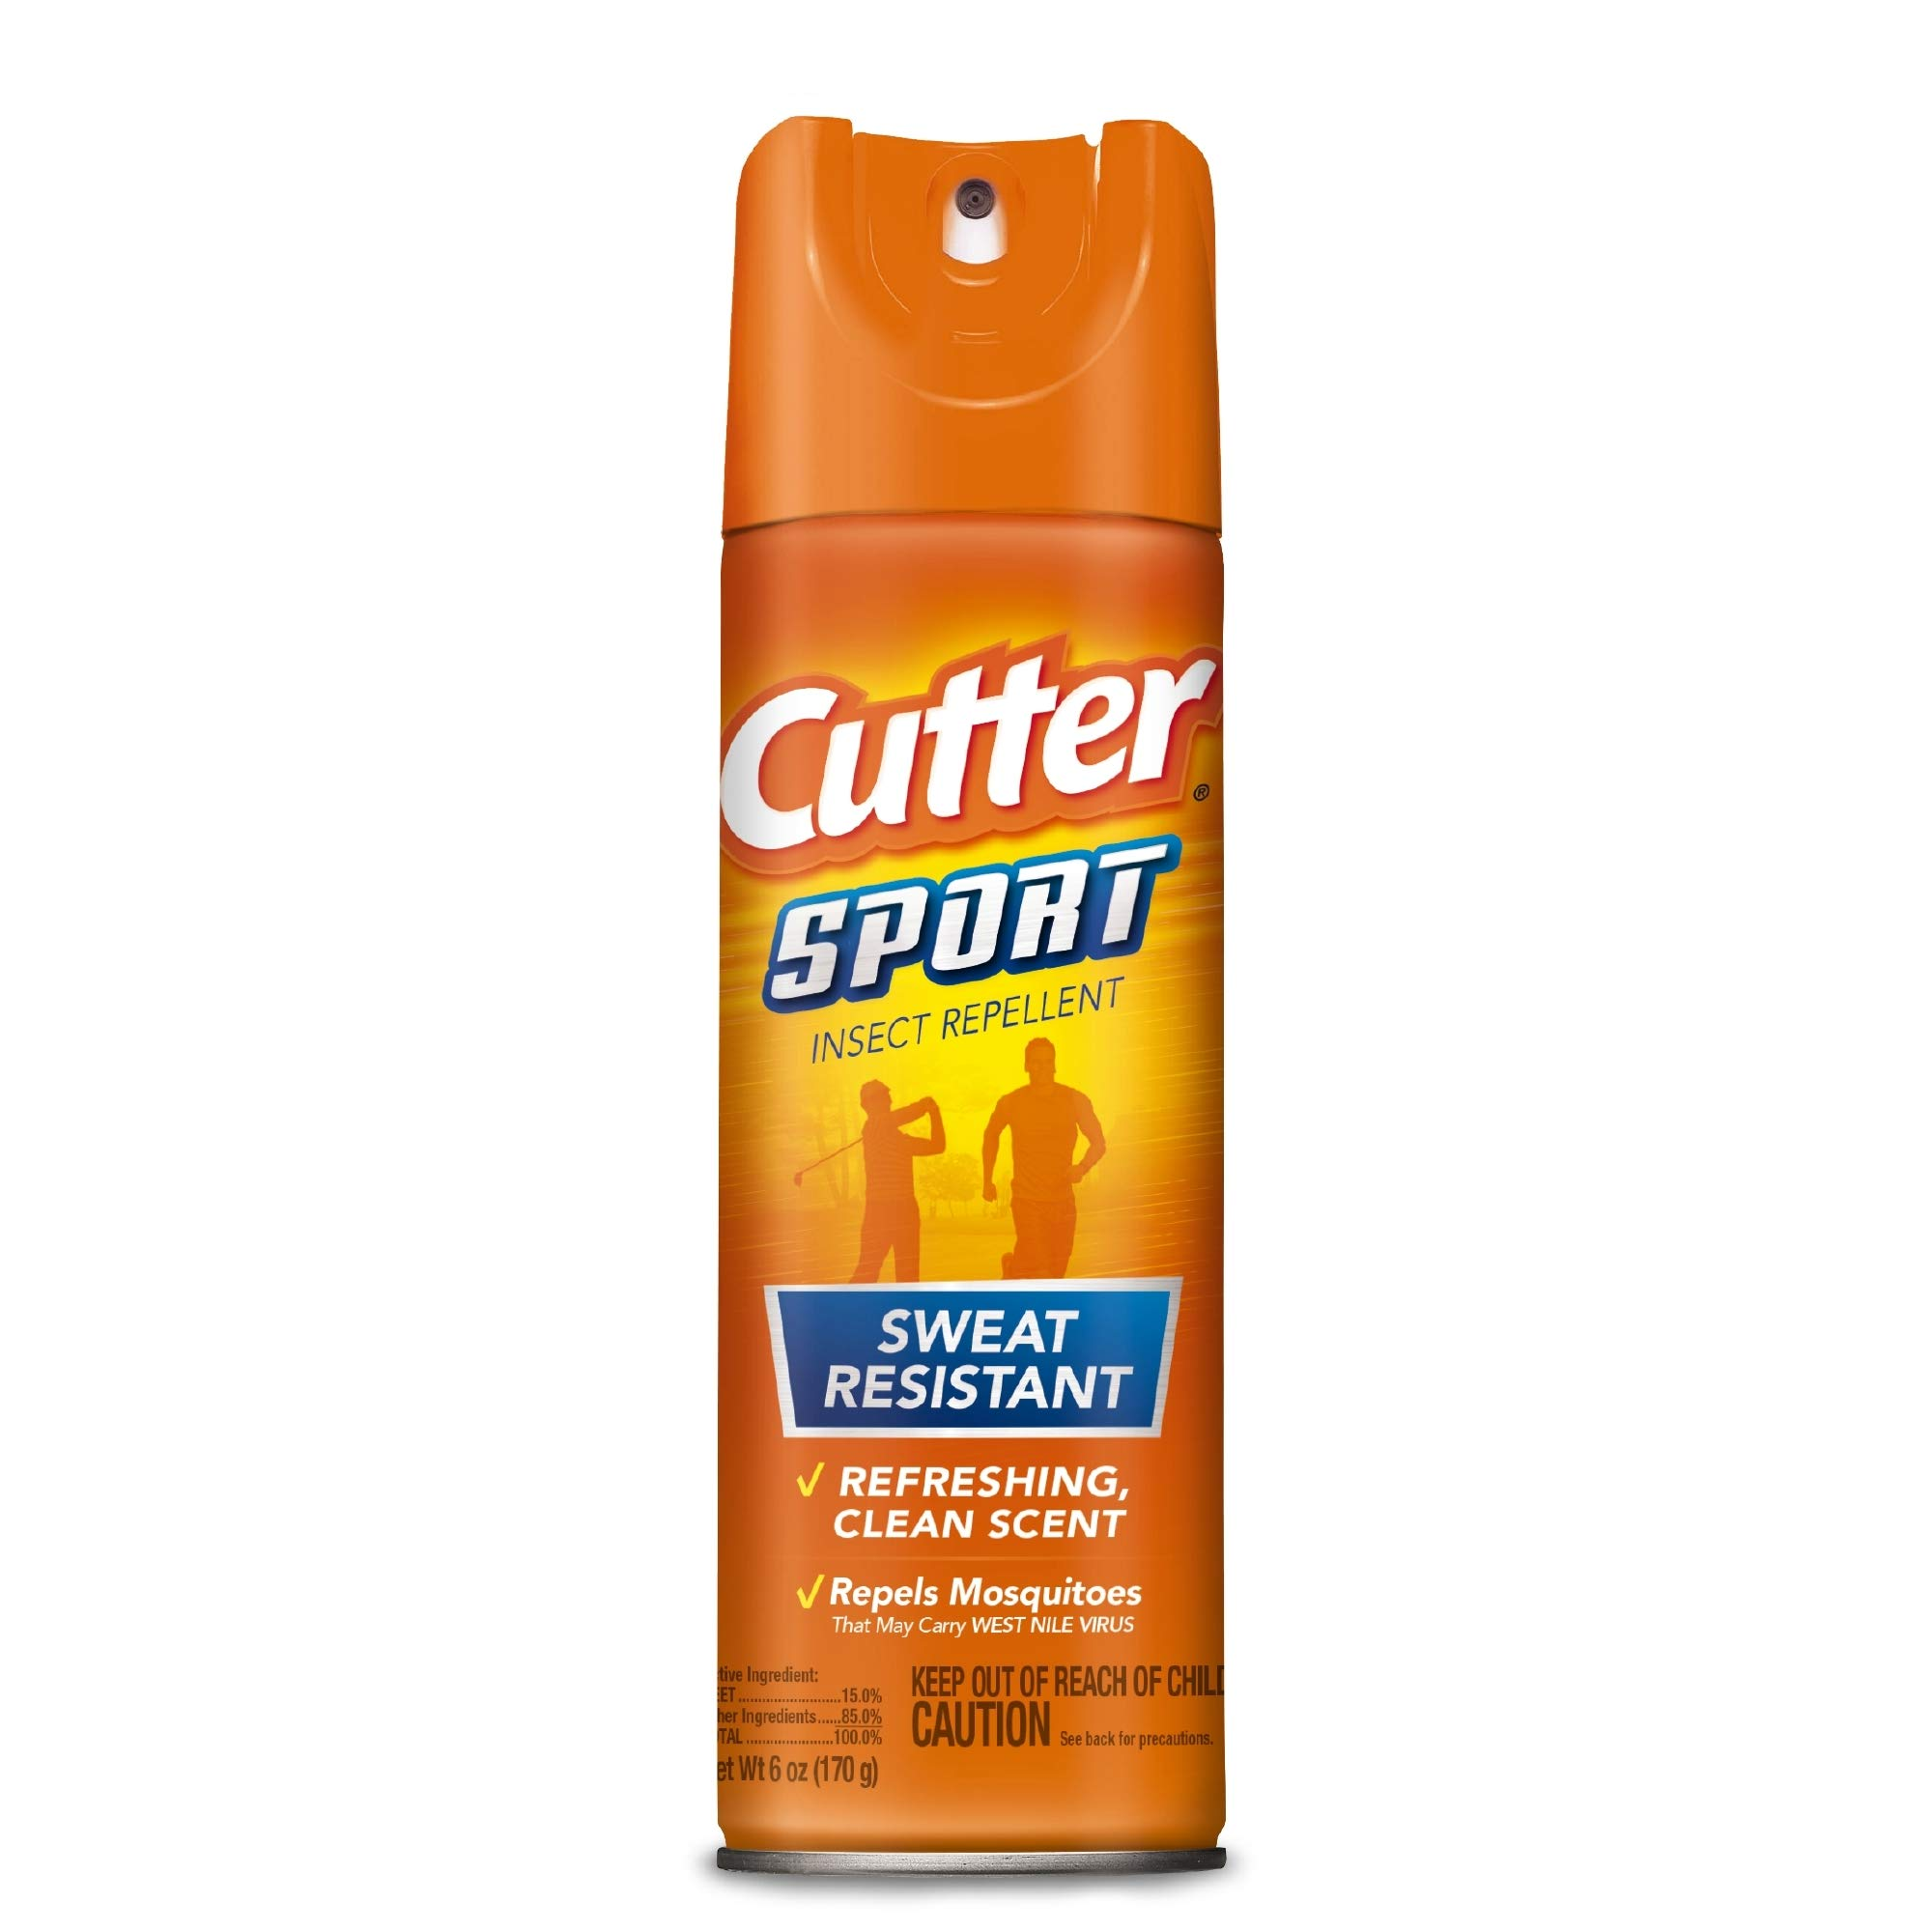 Cutter Sport Insect Repellent, Aerosol, 6-Ounce, 12-Pack